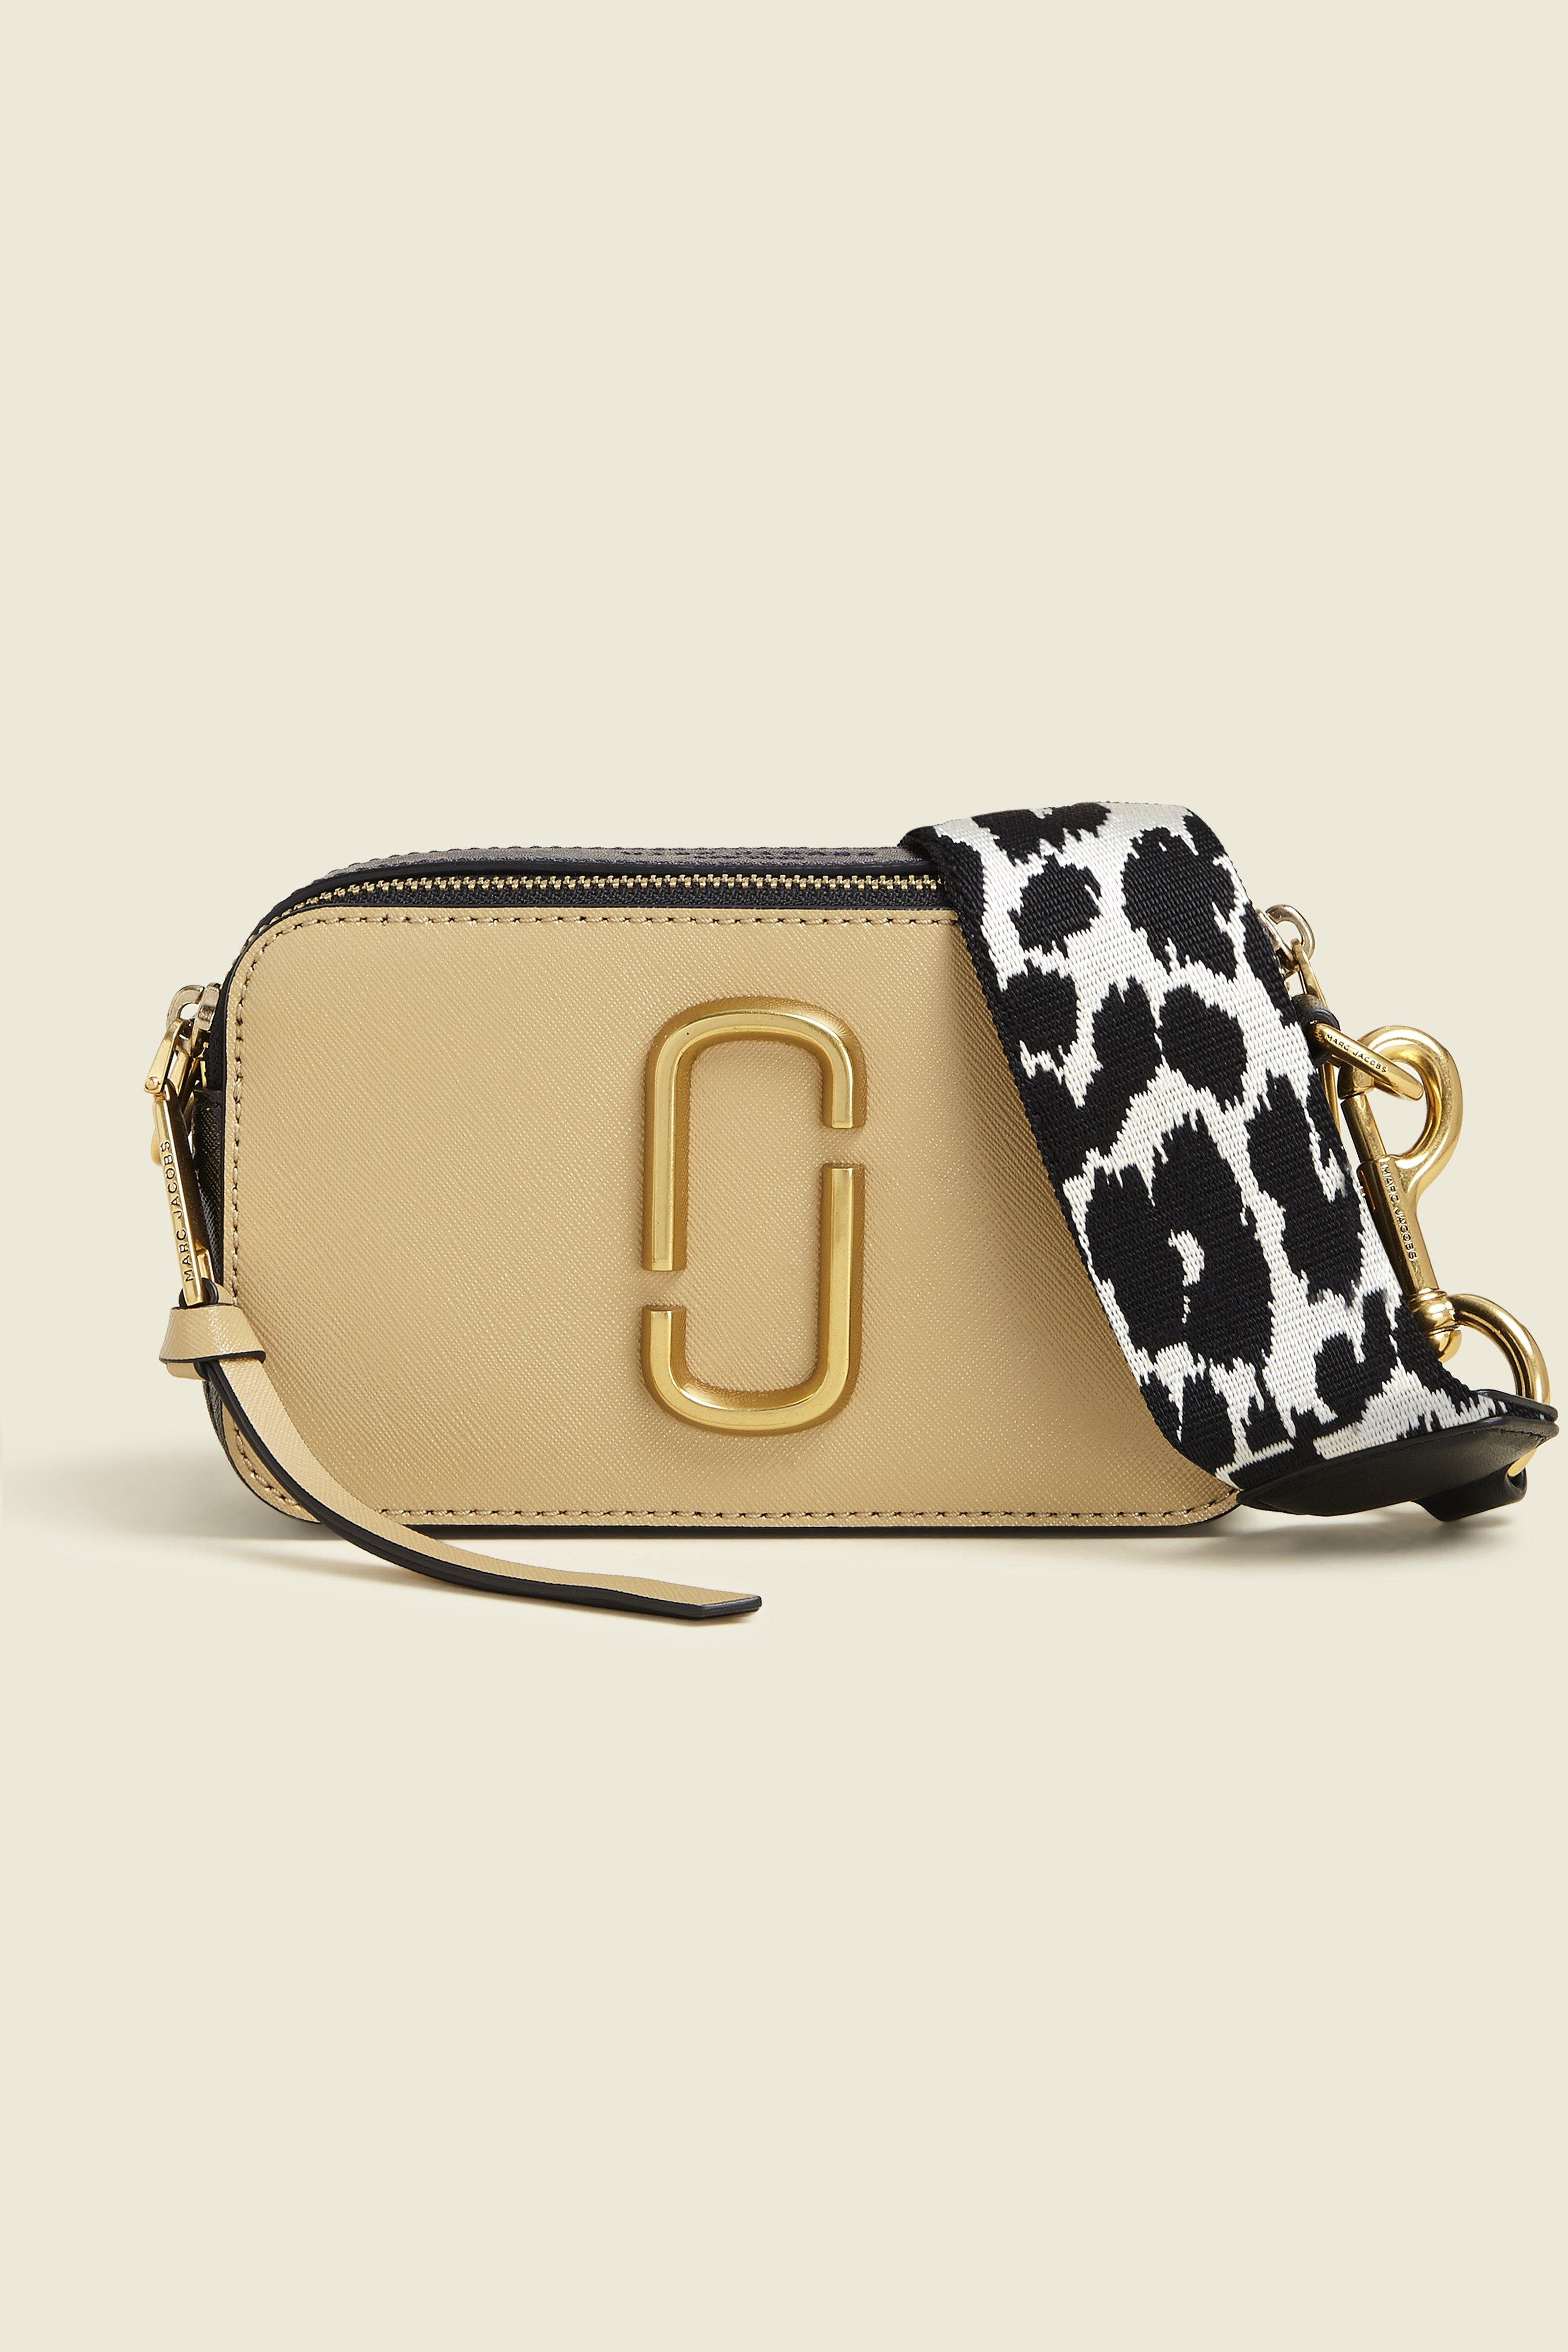 6e5a1d4fb7e0 Marc Jacobs Snapshot Camera Bag In Black And Chianti Split Cow Leather In  Sand